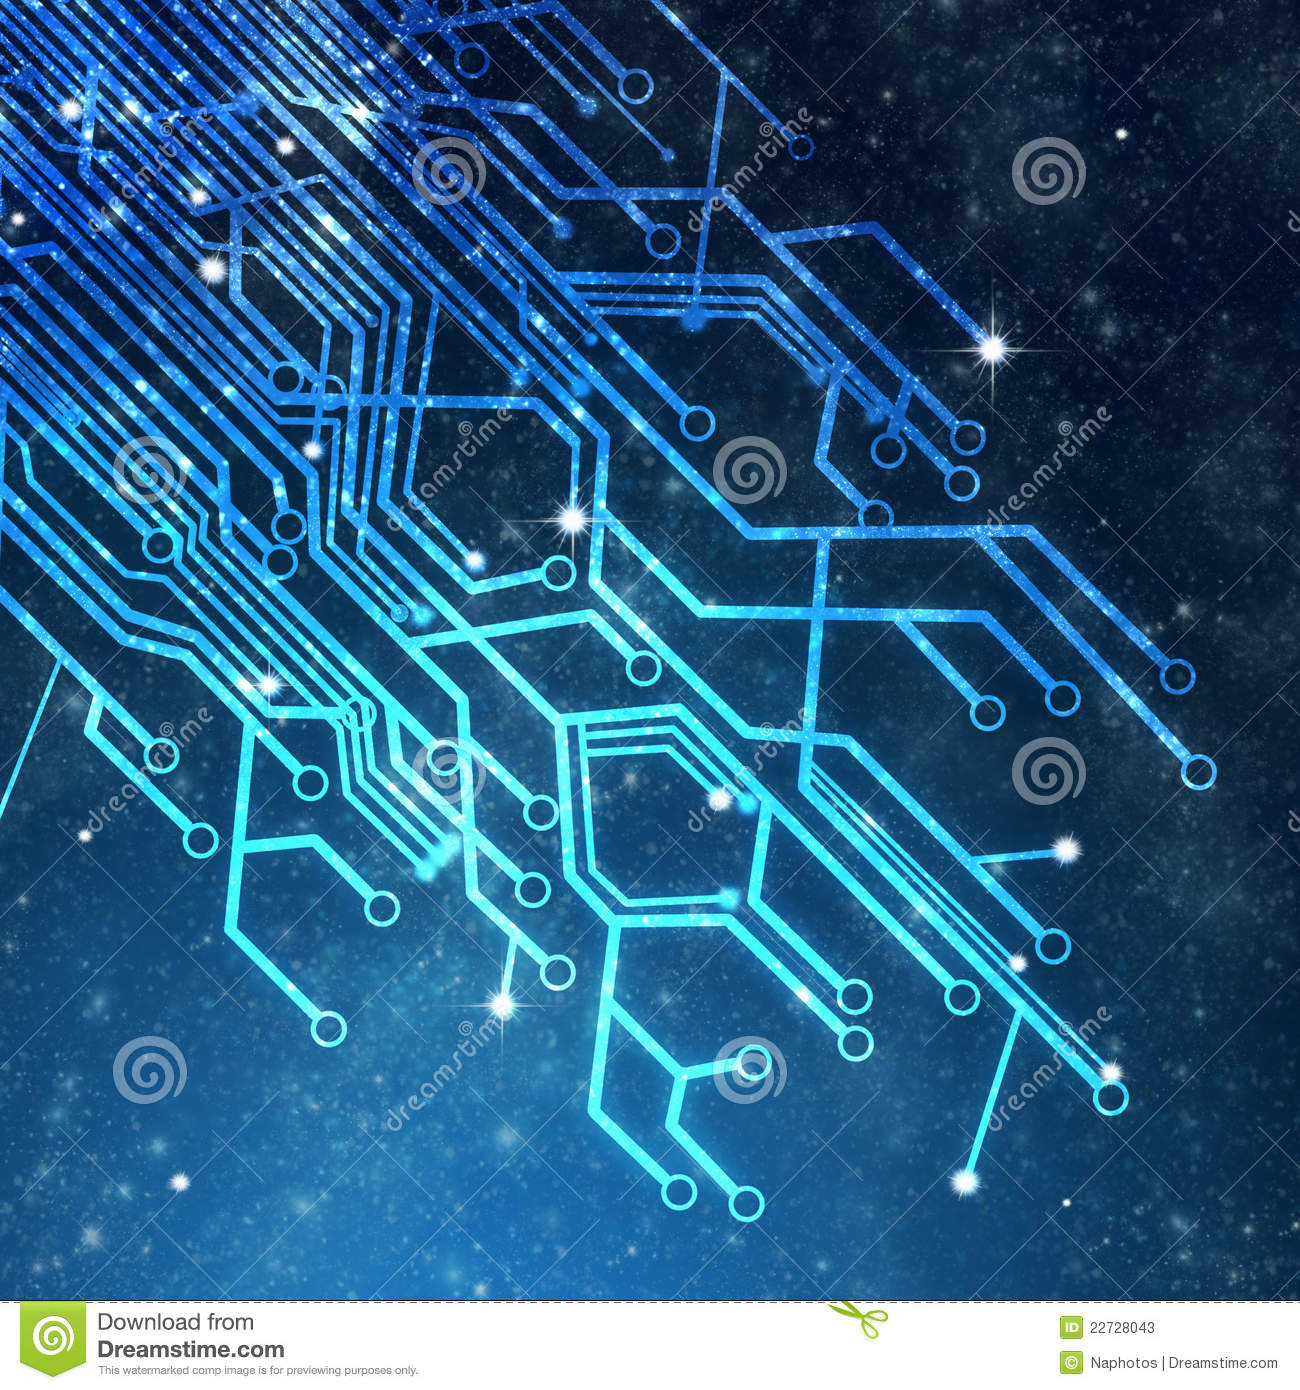 More similar stock images of ` Circuit board graphic `